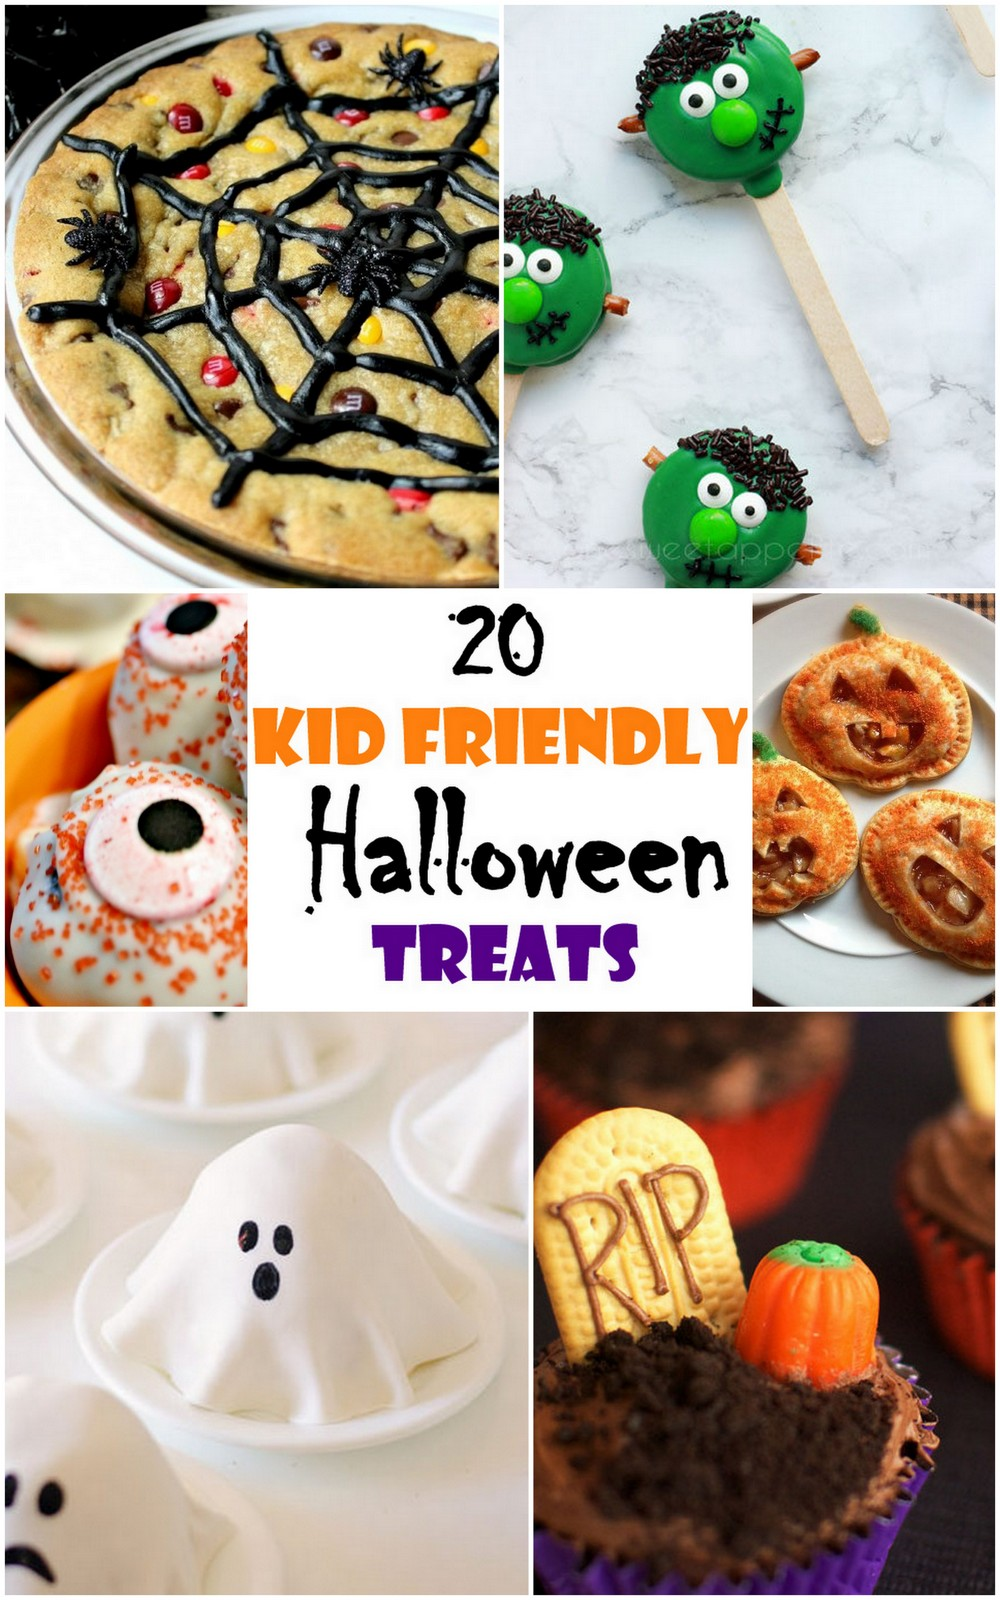 20 kid friendly halloween treats ideas sandyalamode